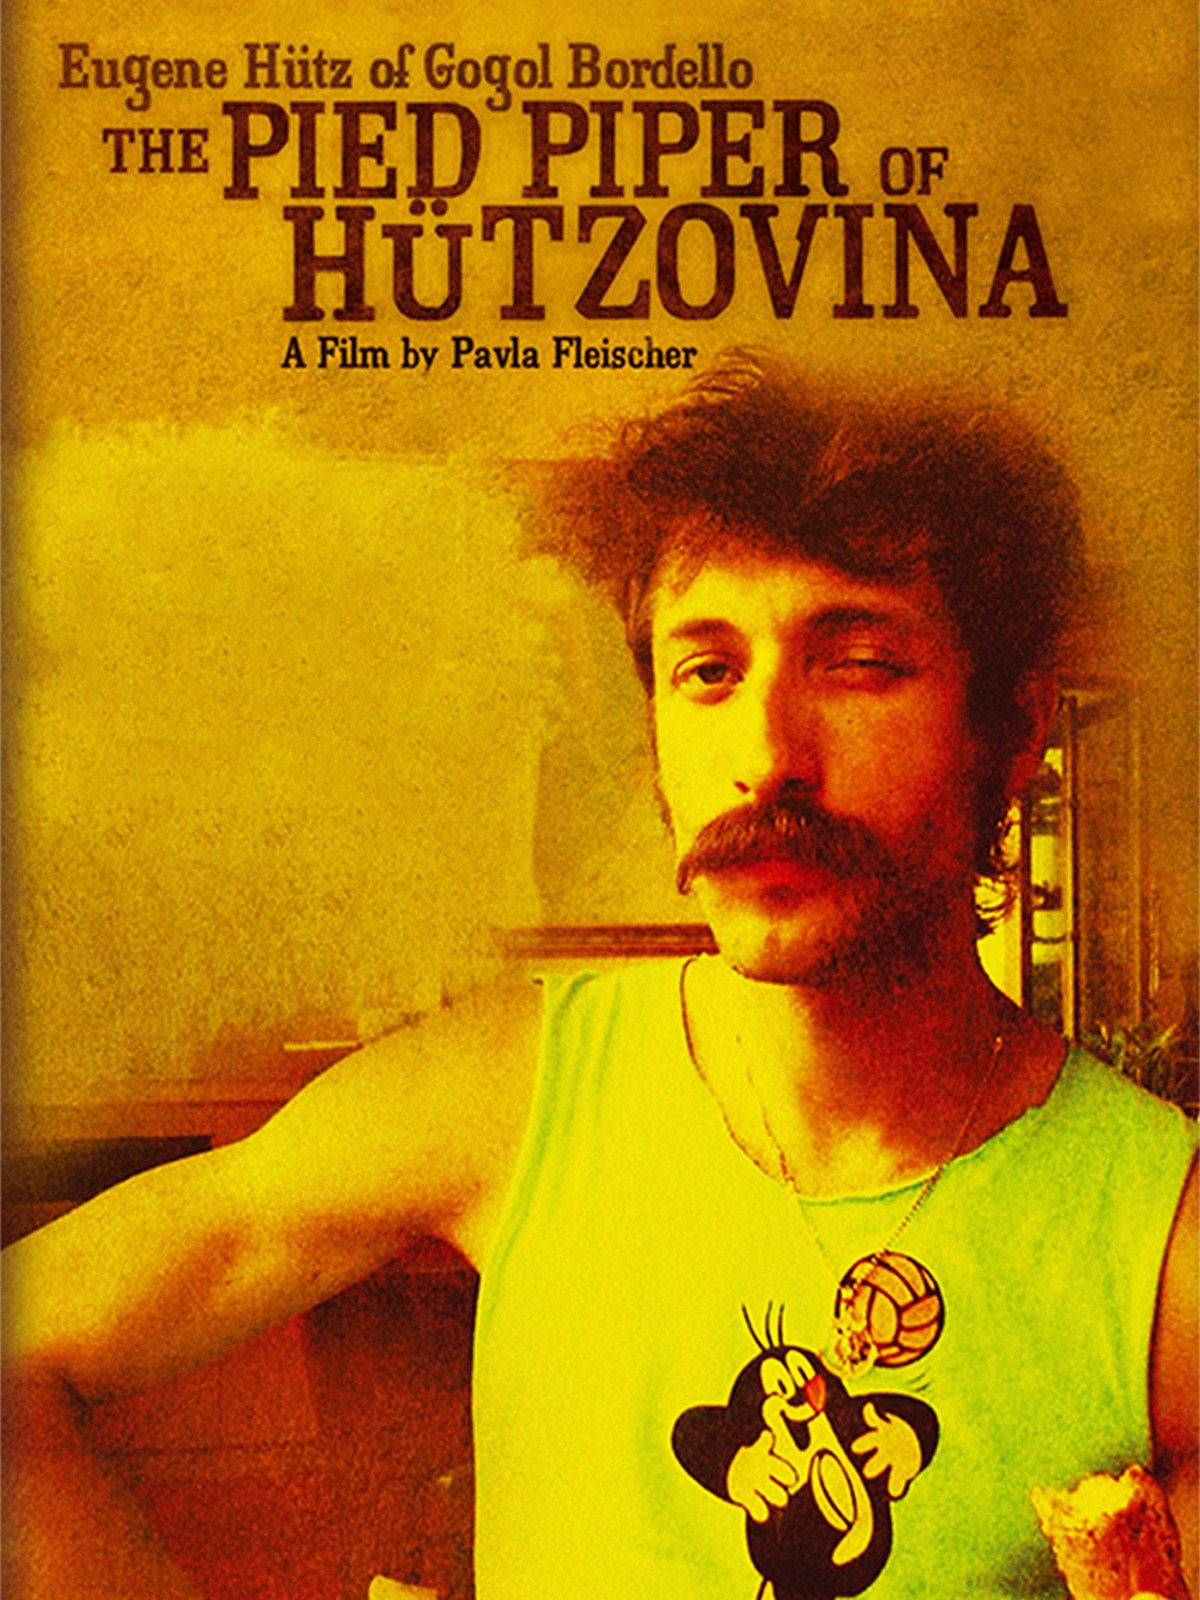 Eugene Hutz of Gogol Bordello - The Pied Piper of Hutzovina